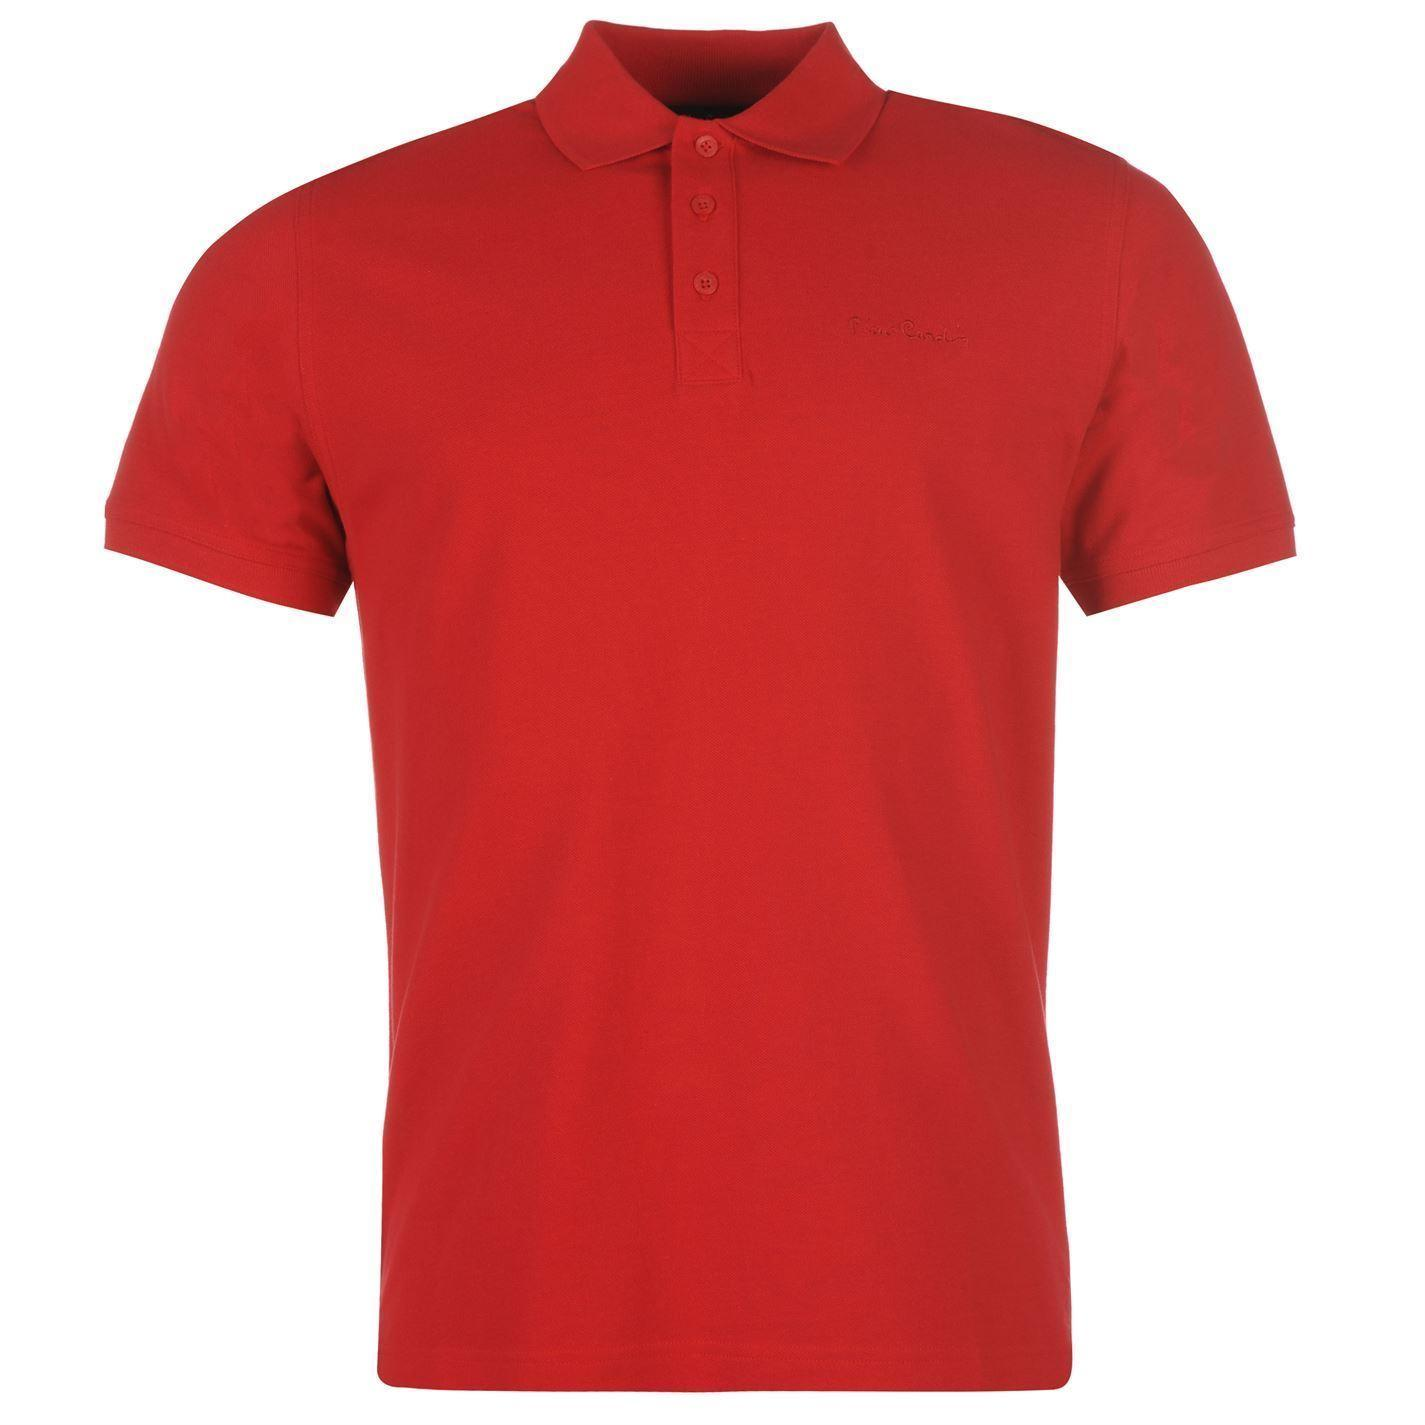 9177a6b3fcc Pierre Cardin Plain Polo Shirt Mens Red Collar T Shirt Top Tee Casual Wear  Online T Shirt Printing On T Shirts From Jacobdesigning